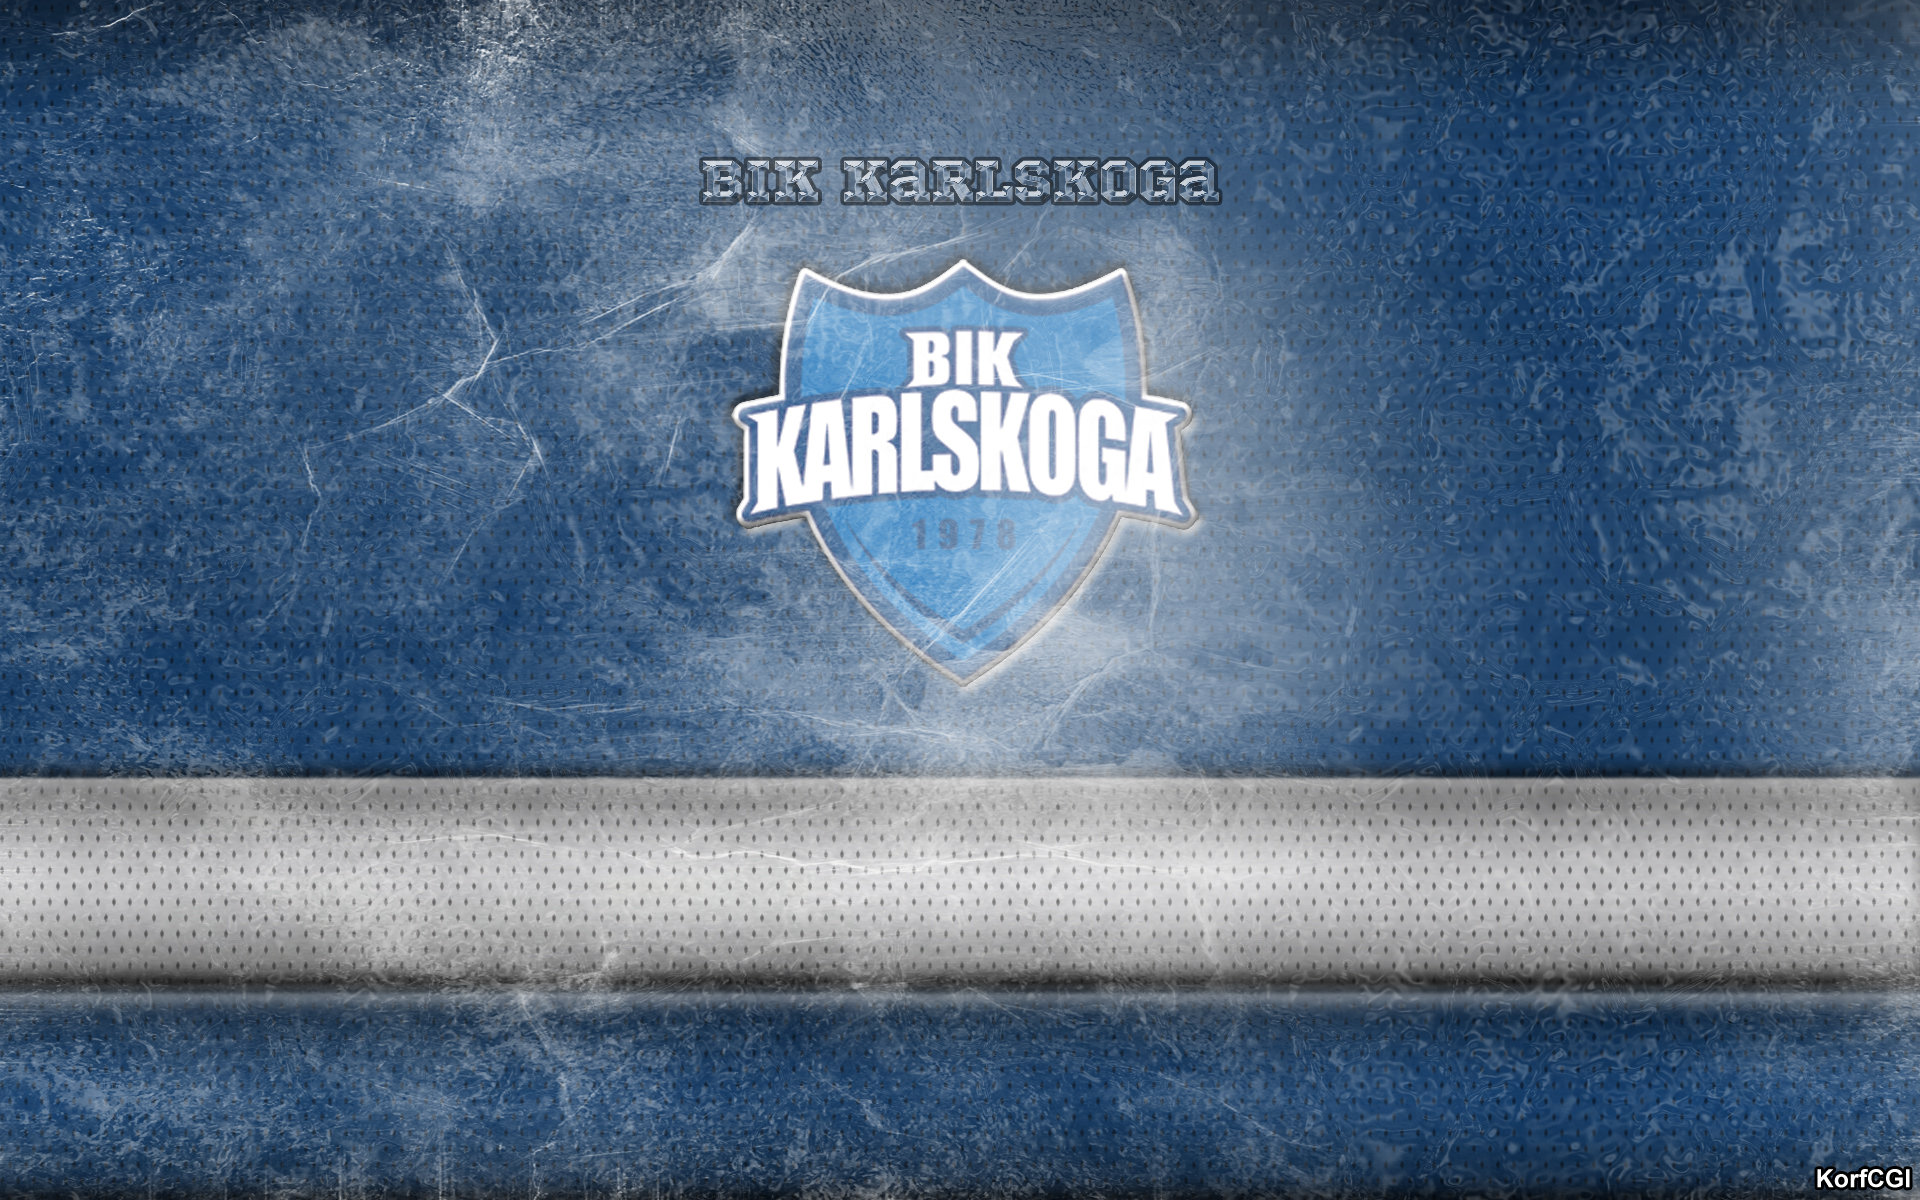 karlskoga chatrooms The scana companies for over 160 years, we've provided energy to customers throughout the carolinas and georgia.